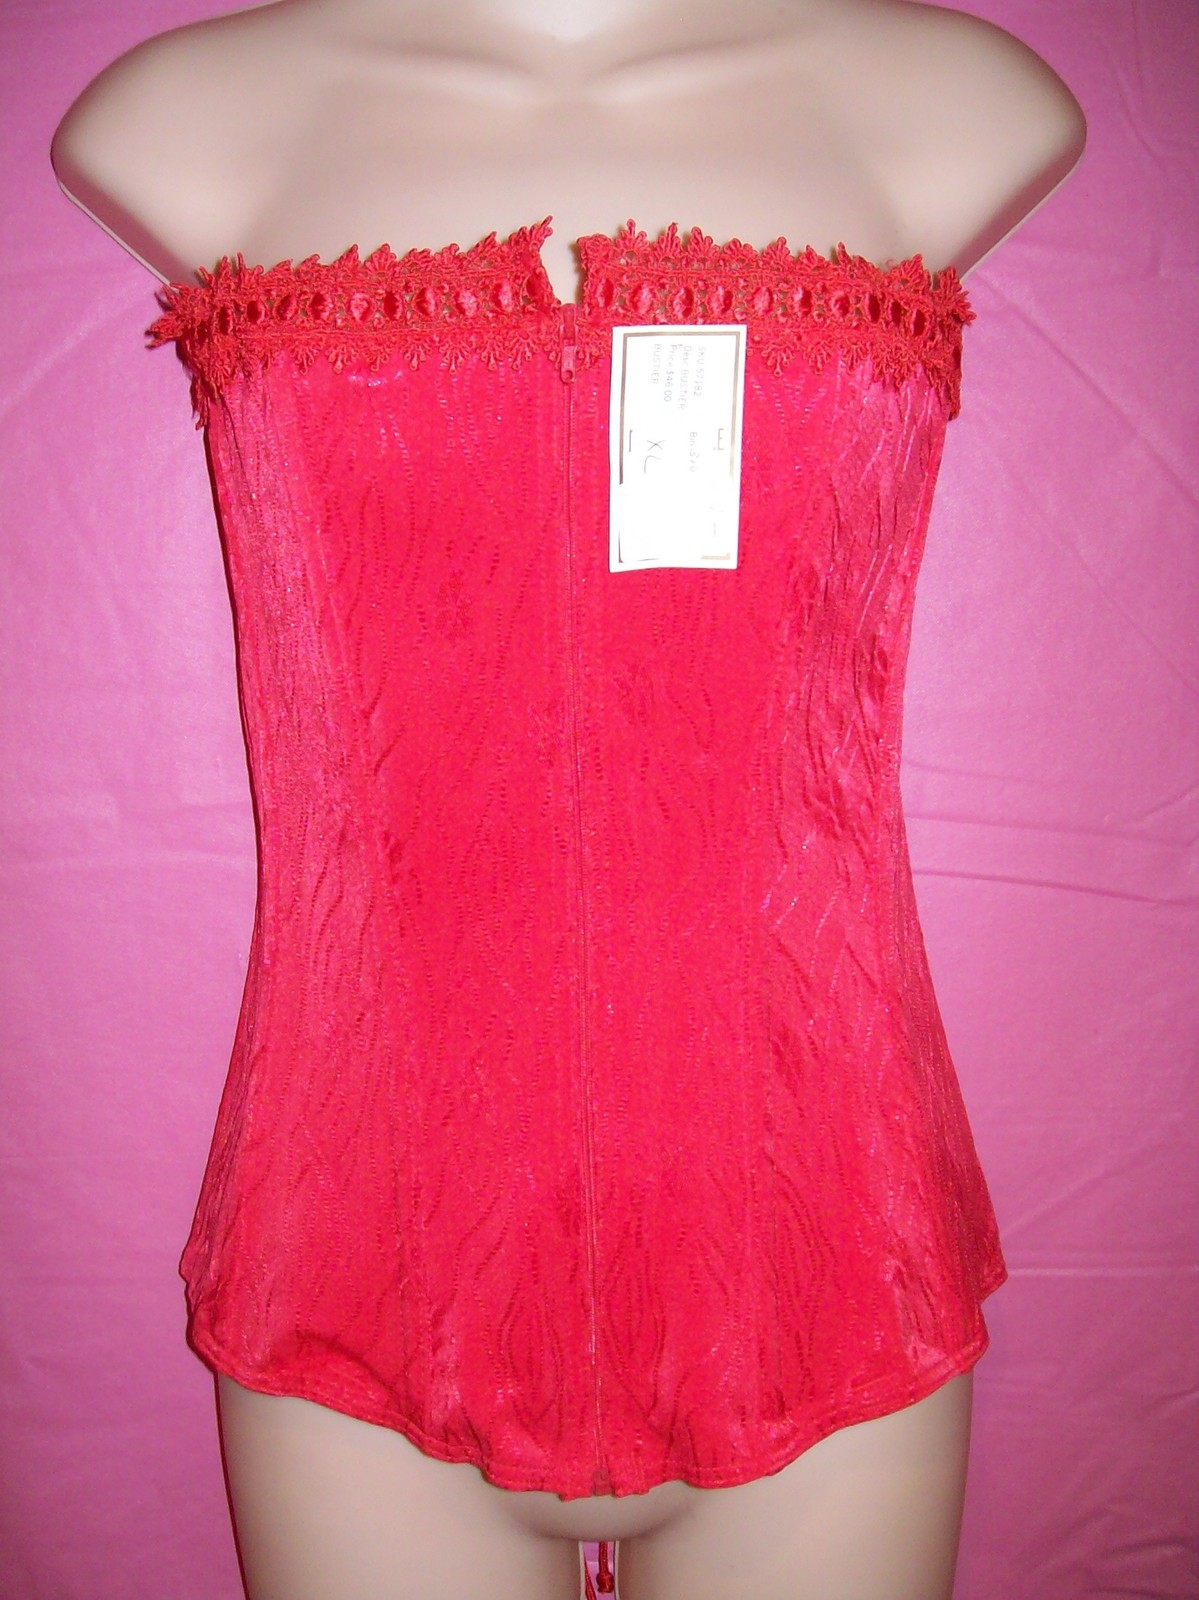 D'Elegance Lingerie Red Strapless Lace-up and Zippered Jacquard Corset: XL